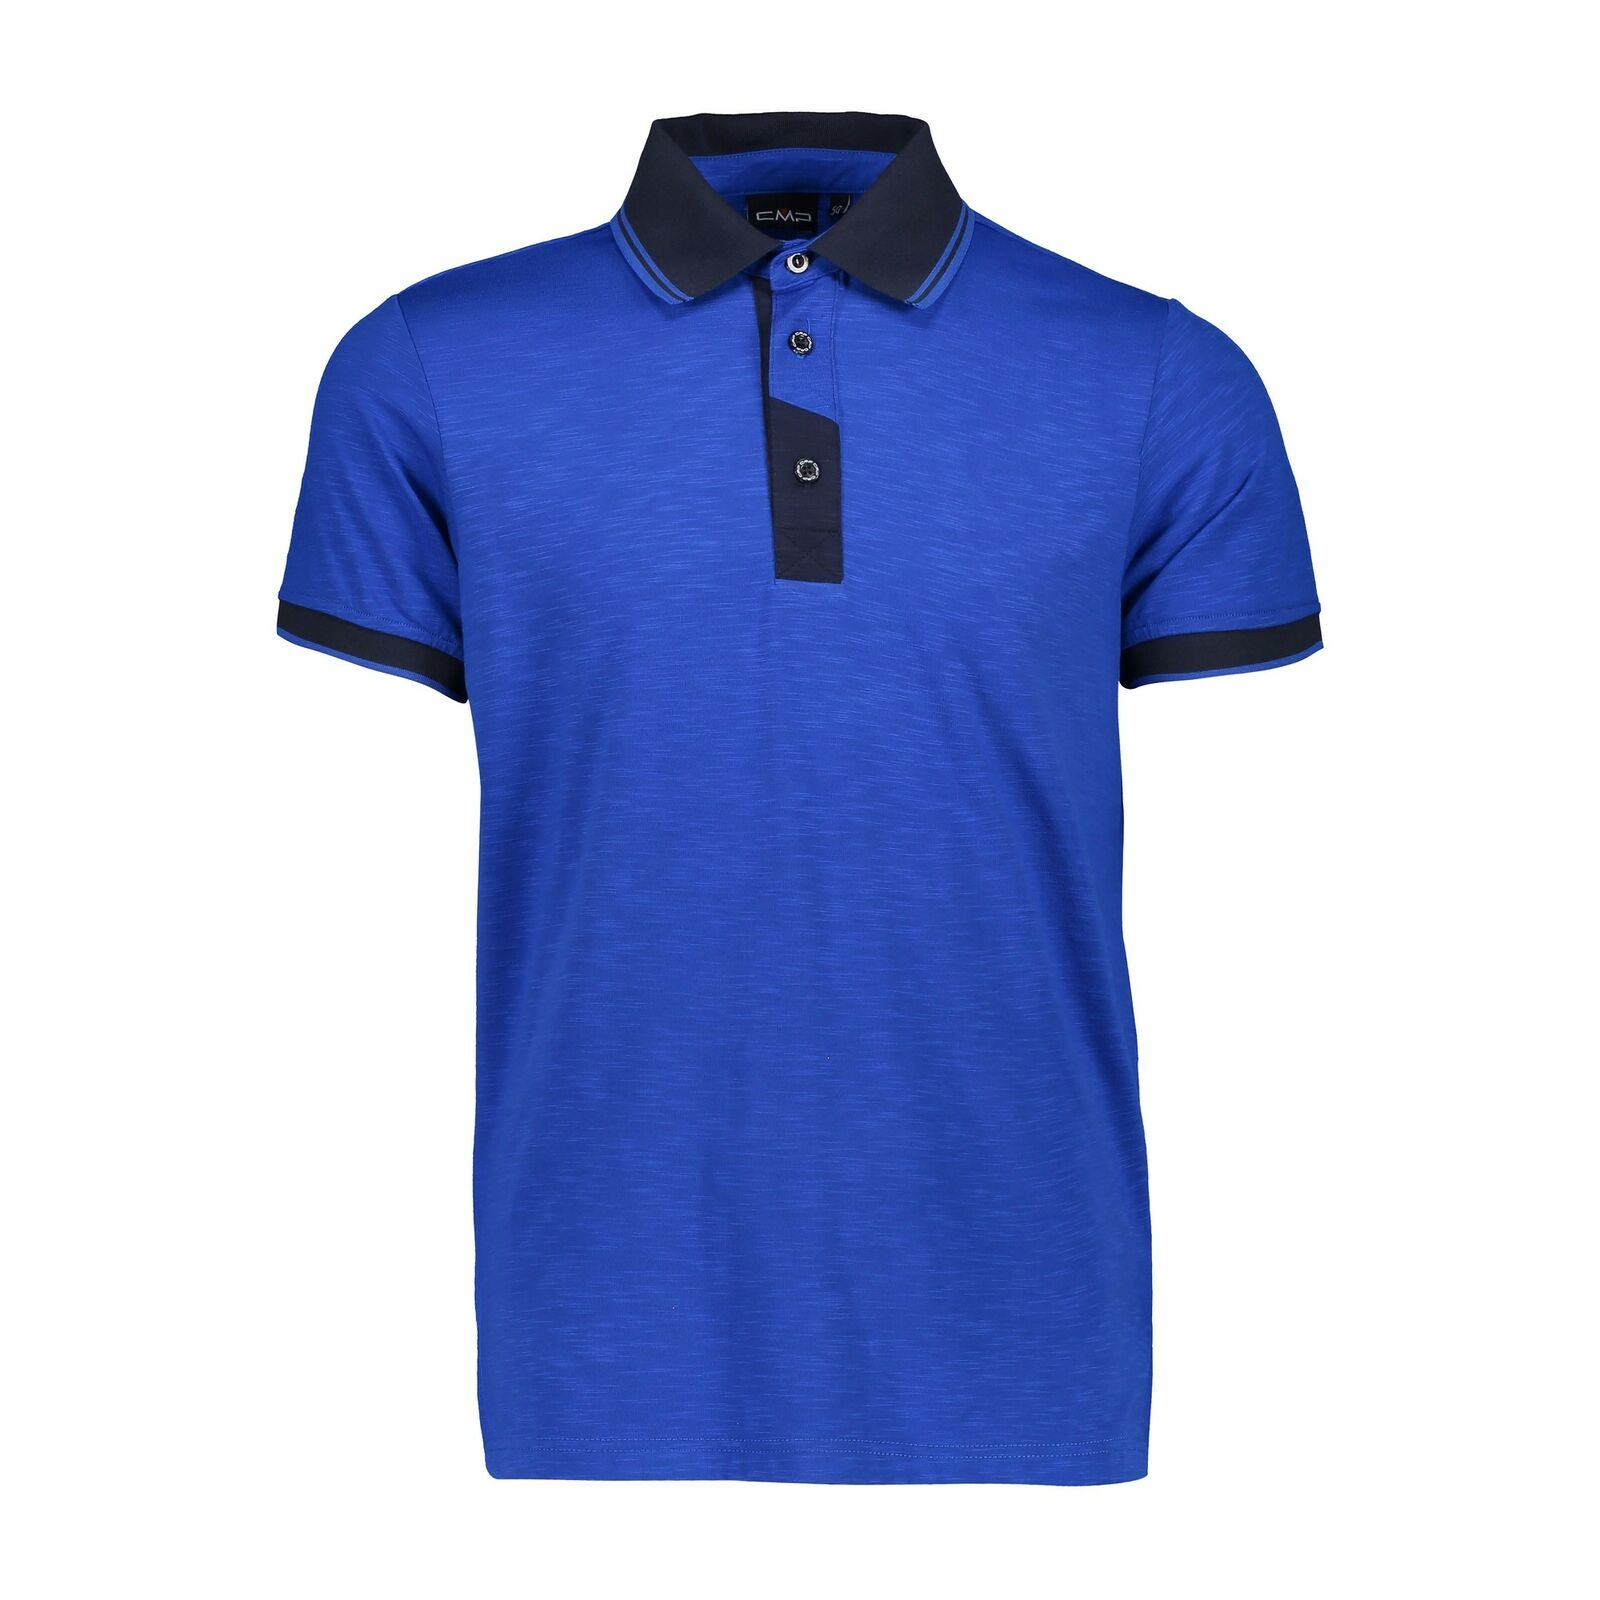 CMP Polo Shirt Shirt One Polo blue Breathable Elastic Antibacterial  Stretch  up to 42% off